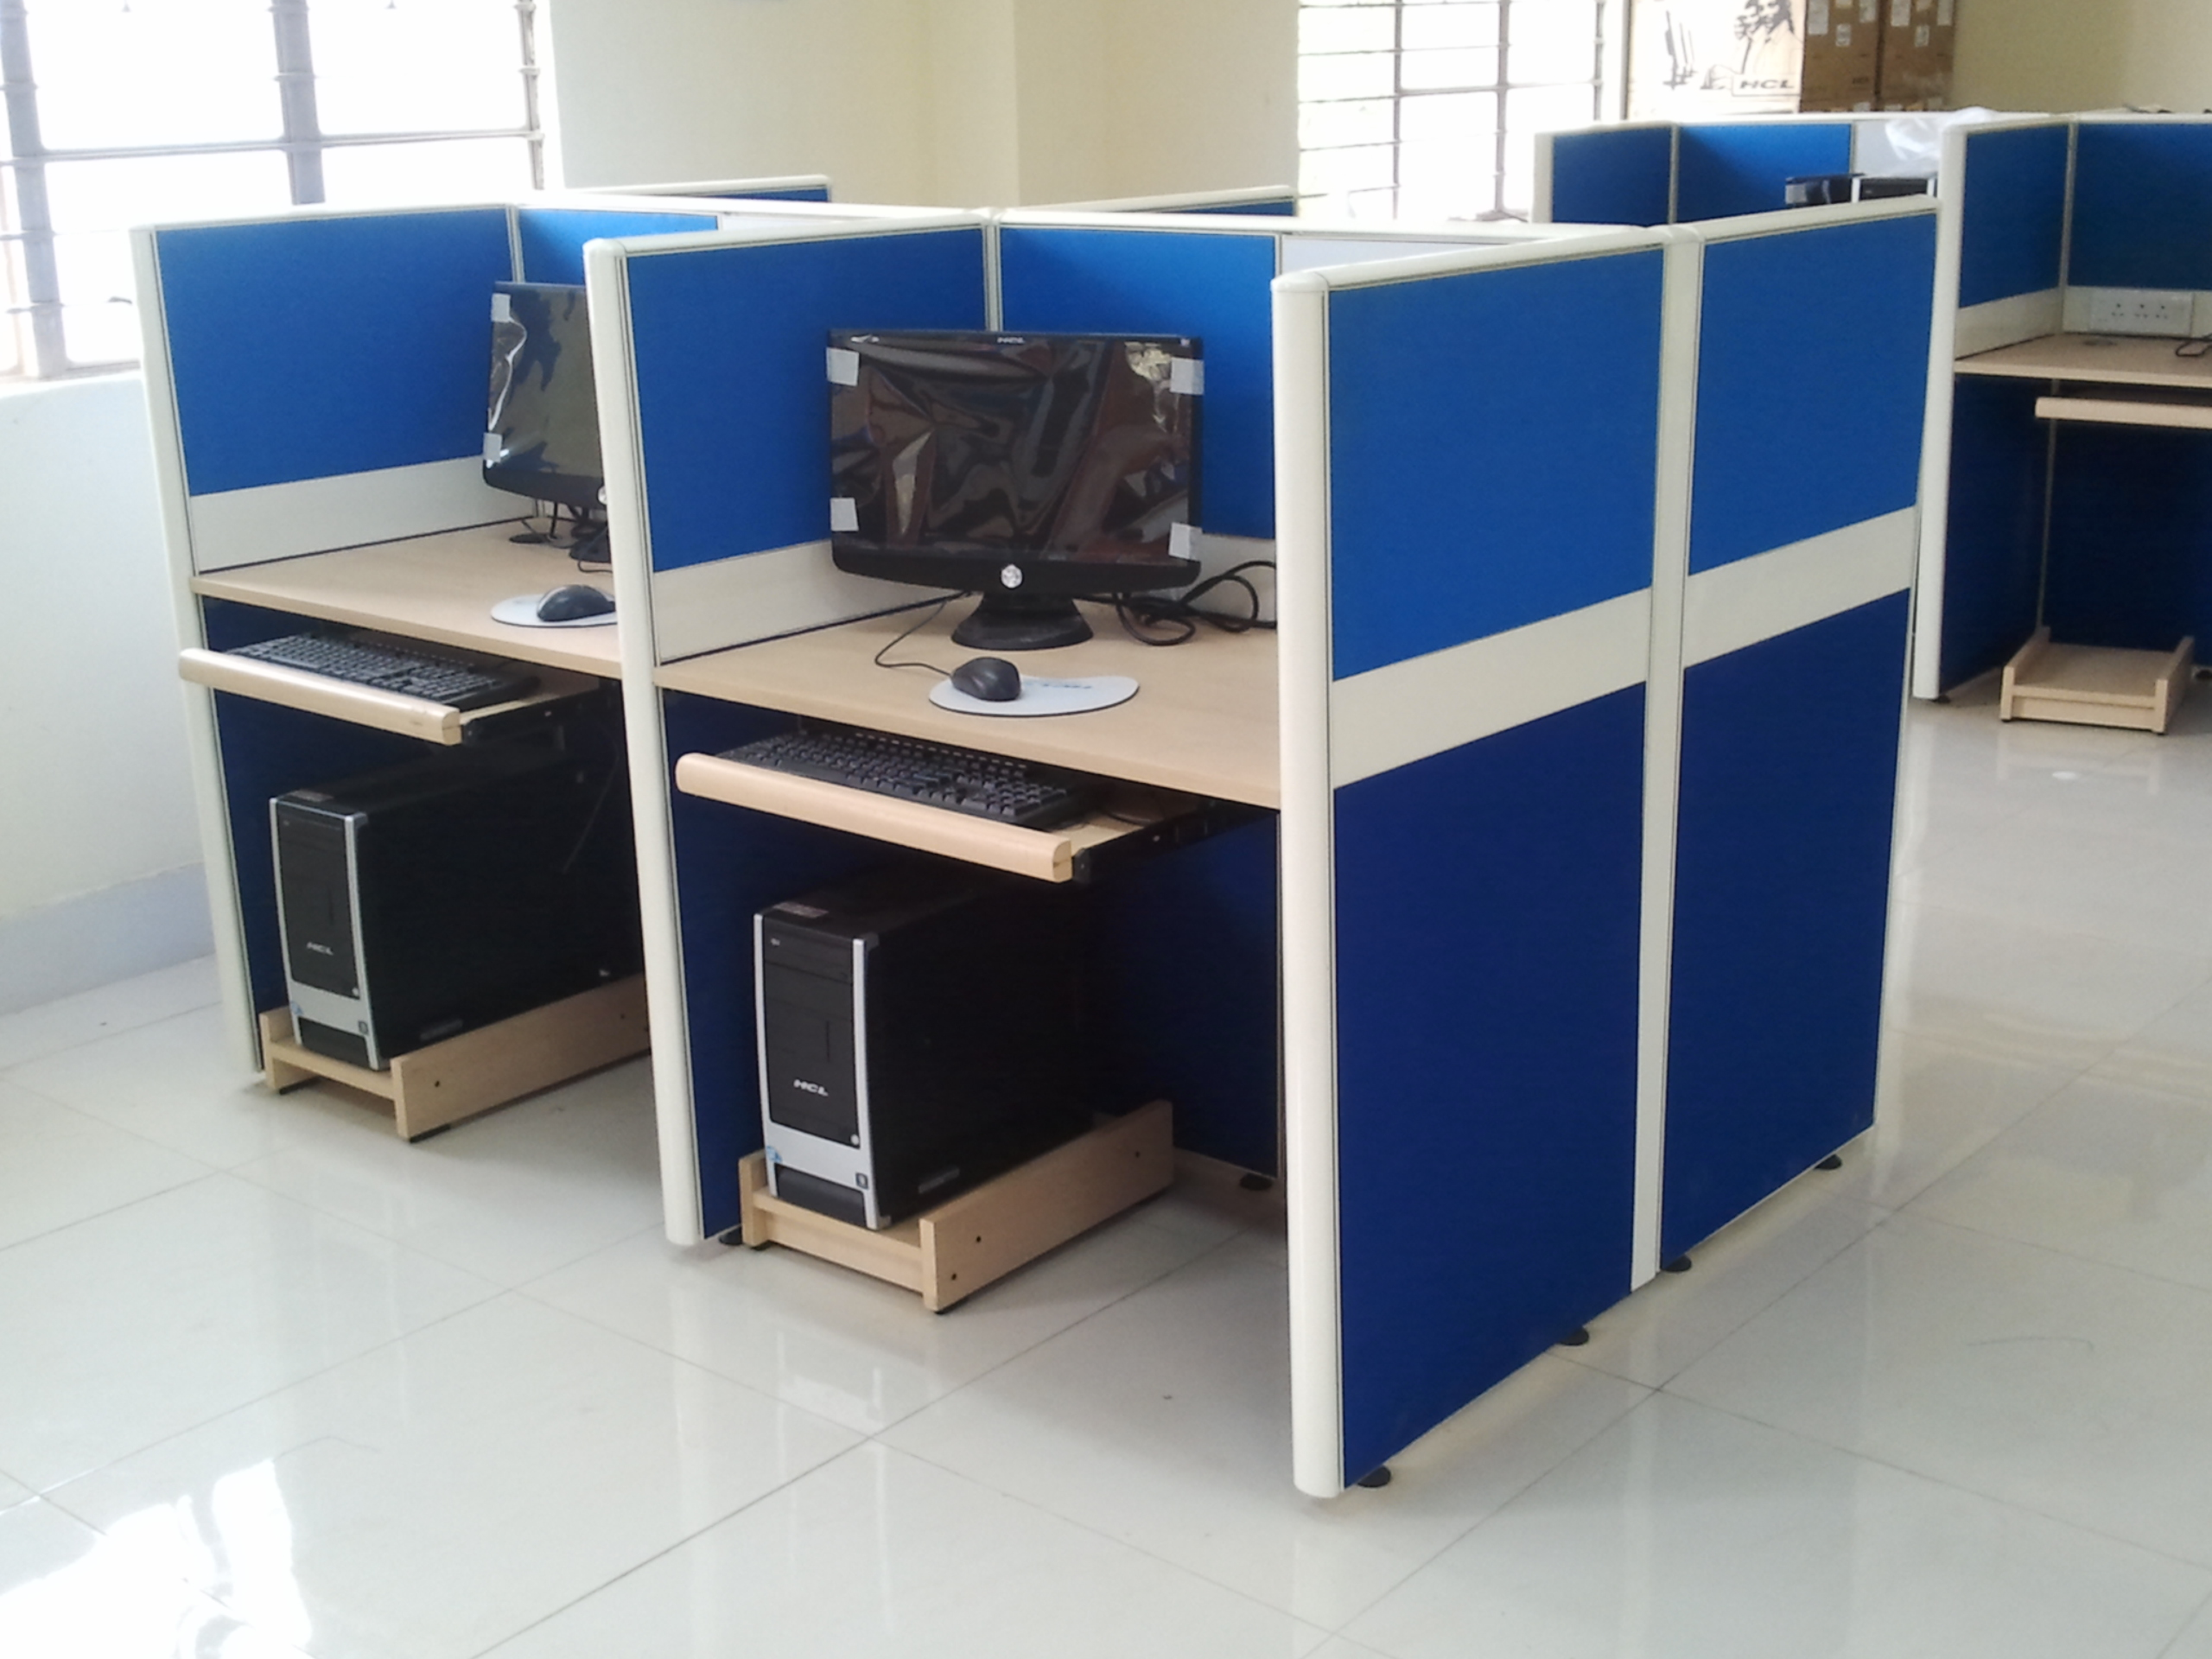 office visitor chairs trailer hitch hammock chair modular workstation in chennai | workstations manufacturers